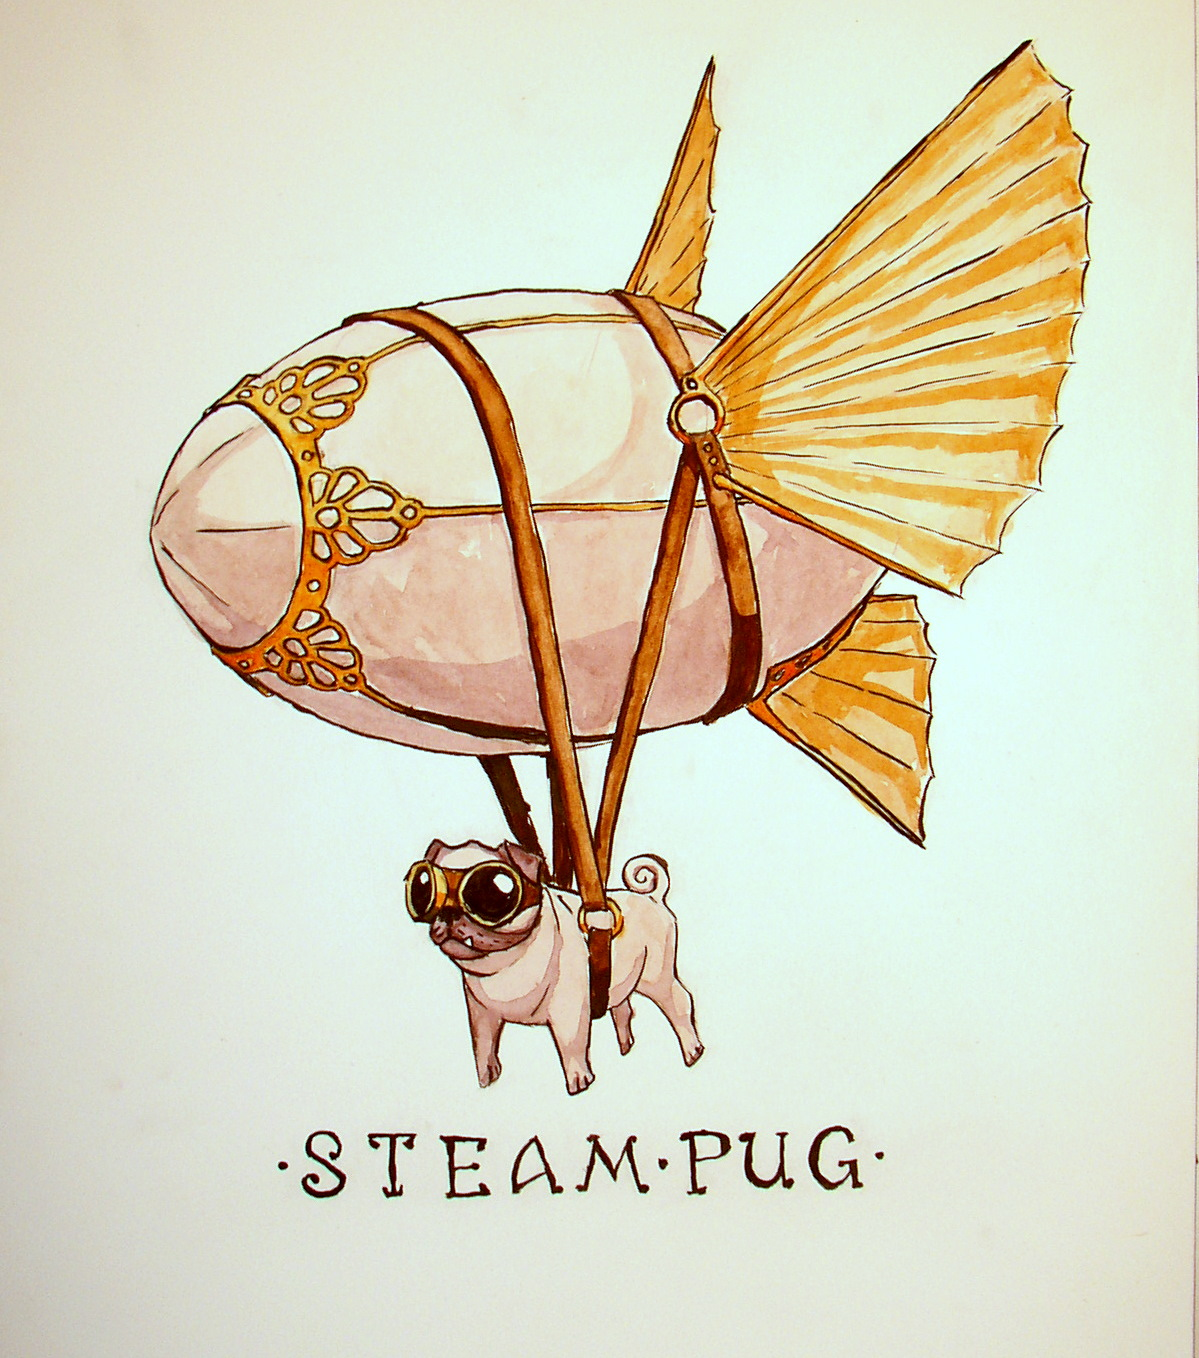 http://robinlatkovich.files.wordpress.com/2011/07/steampug.jpg